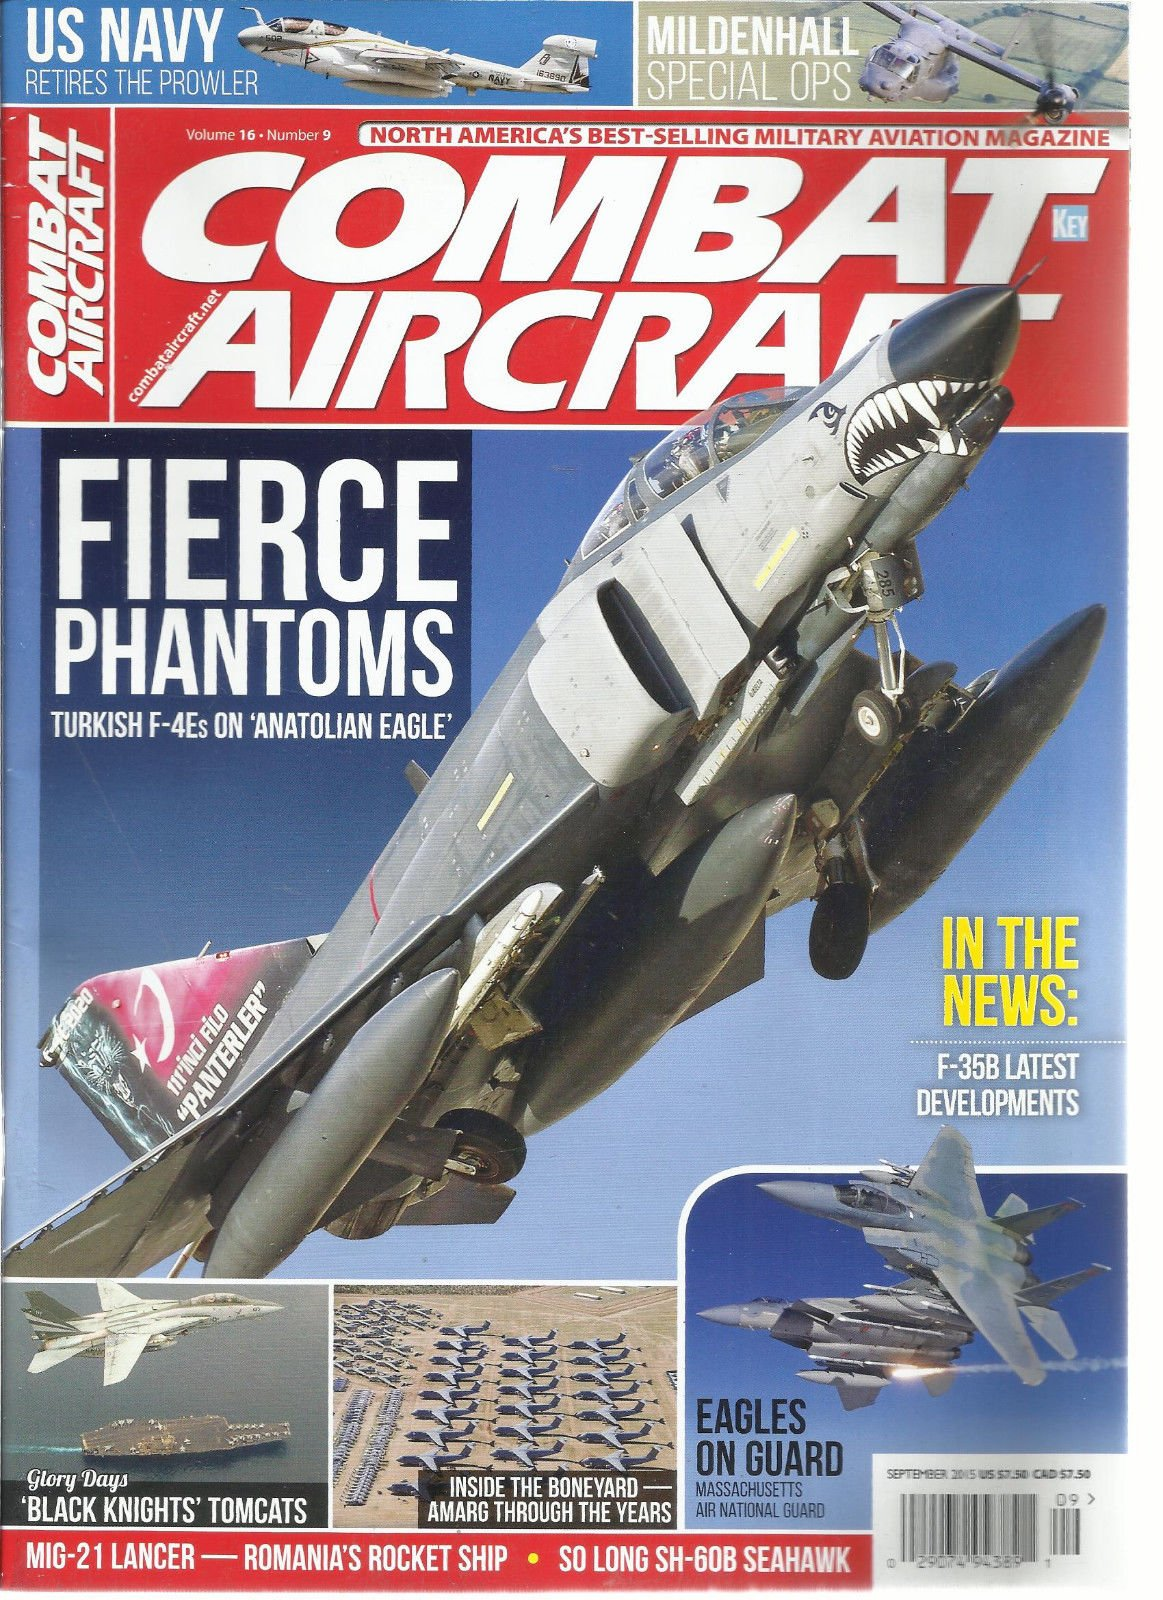 COMBAT AIRCRAFT MONTHLY, SEPTEMBER, 2015 (NORTH AMERICA'S BEST SELLING MILITARY